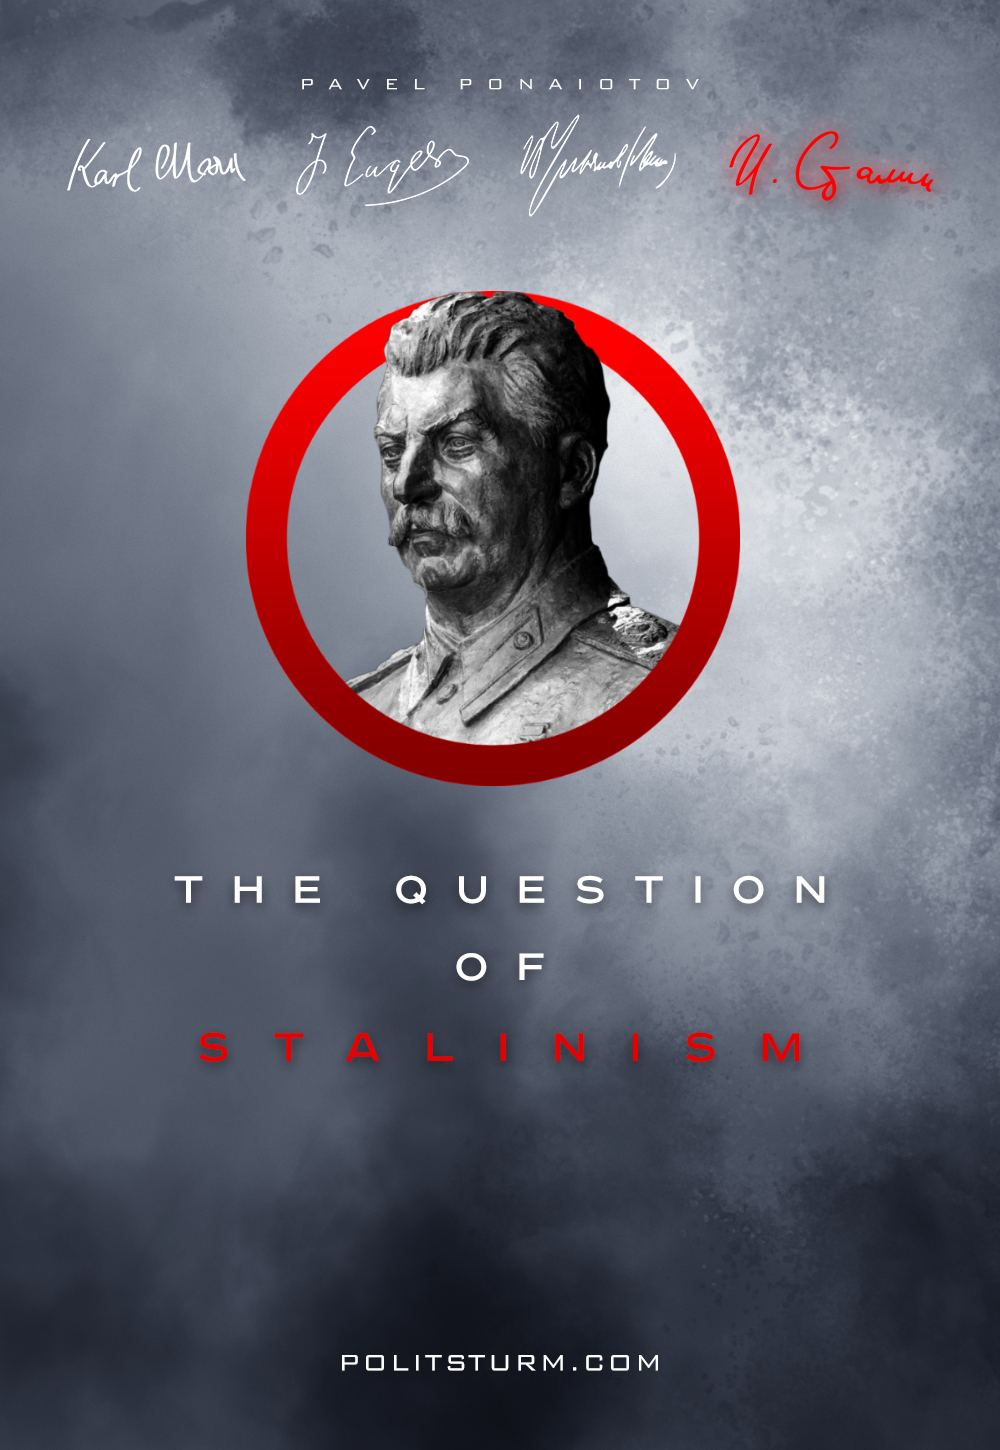 The question of Stalinism